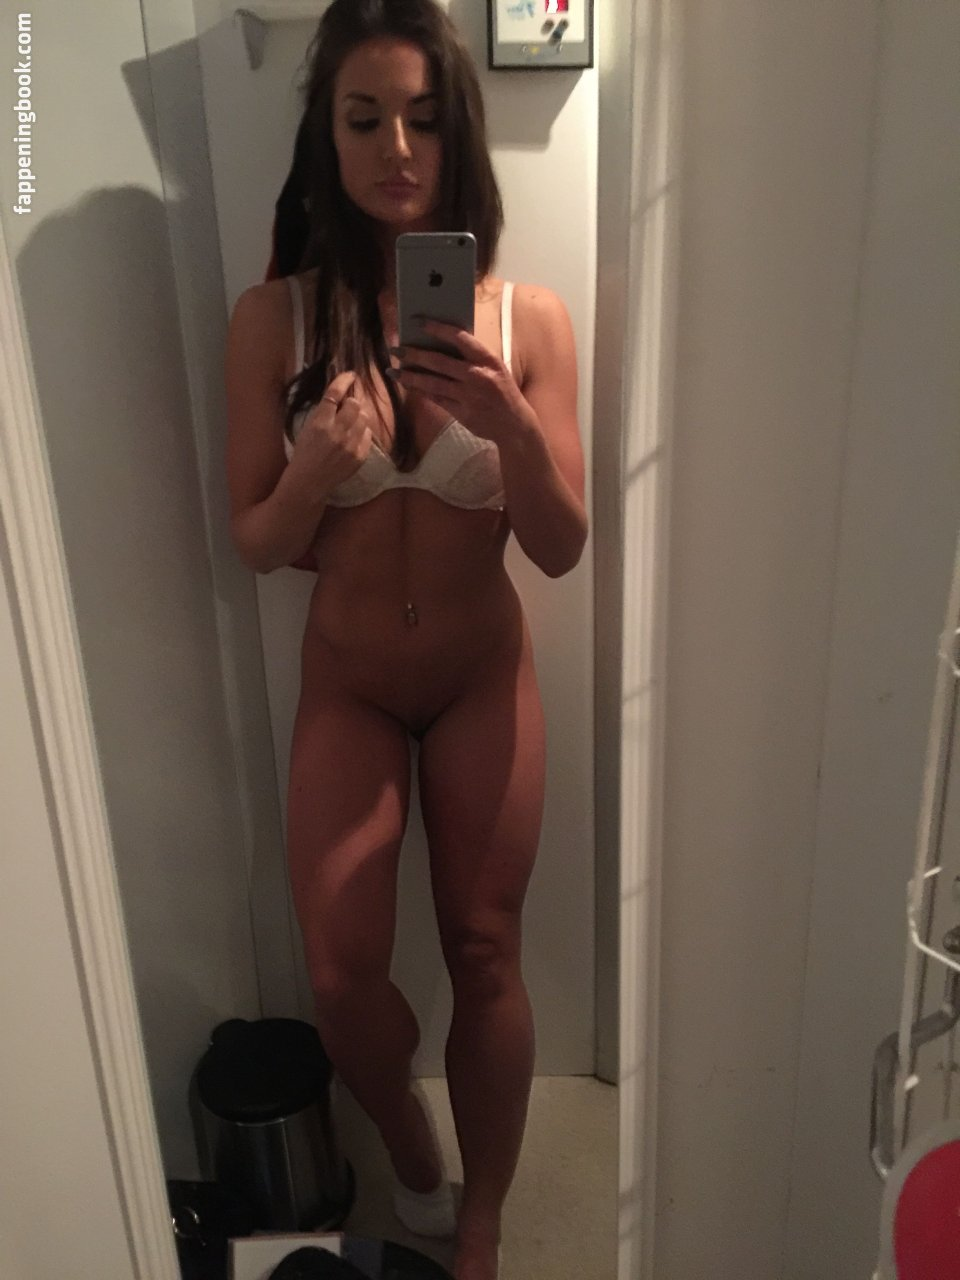 Whitney Johns Nude, Sexy, The Fappening, Uncensored - Photo ...